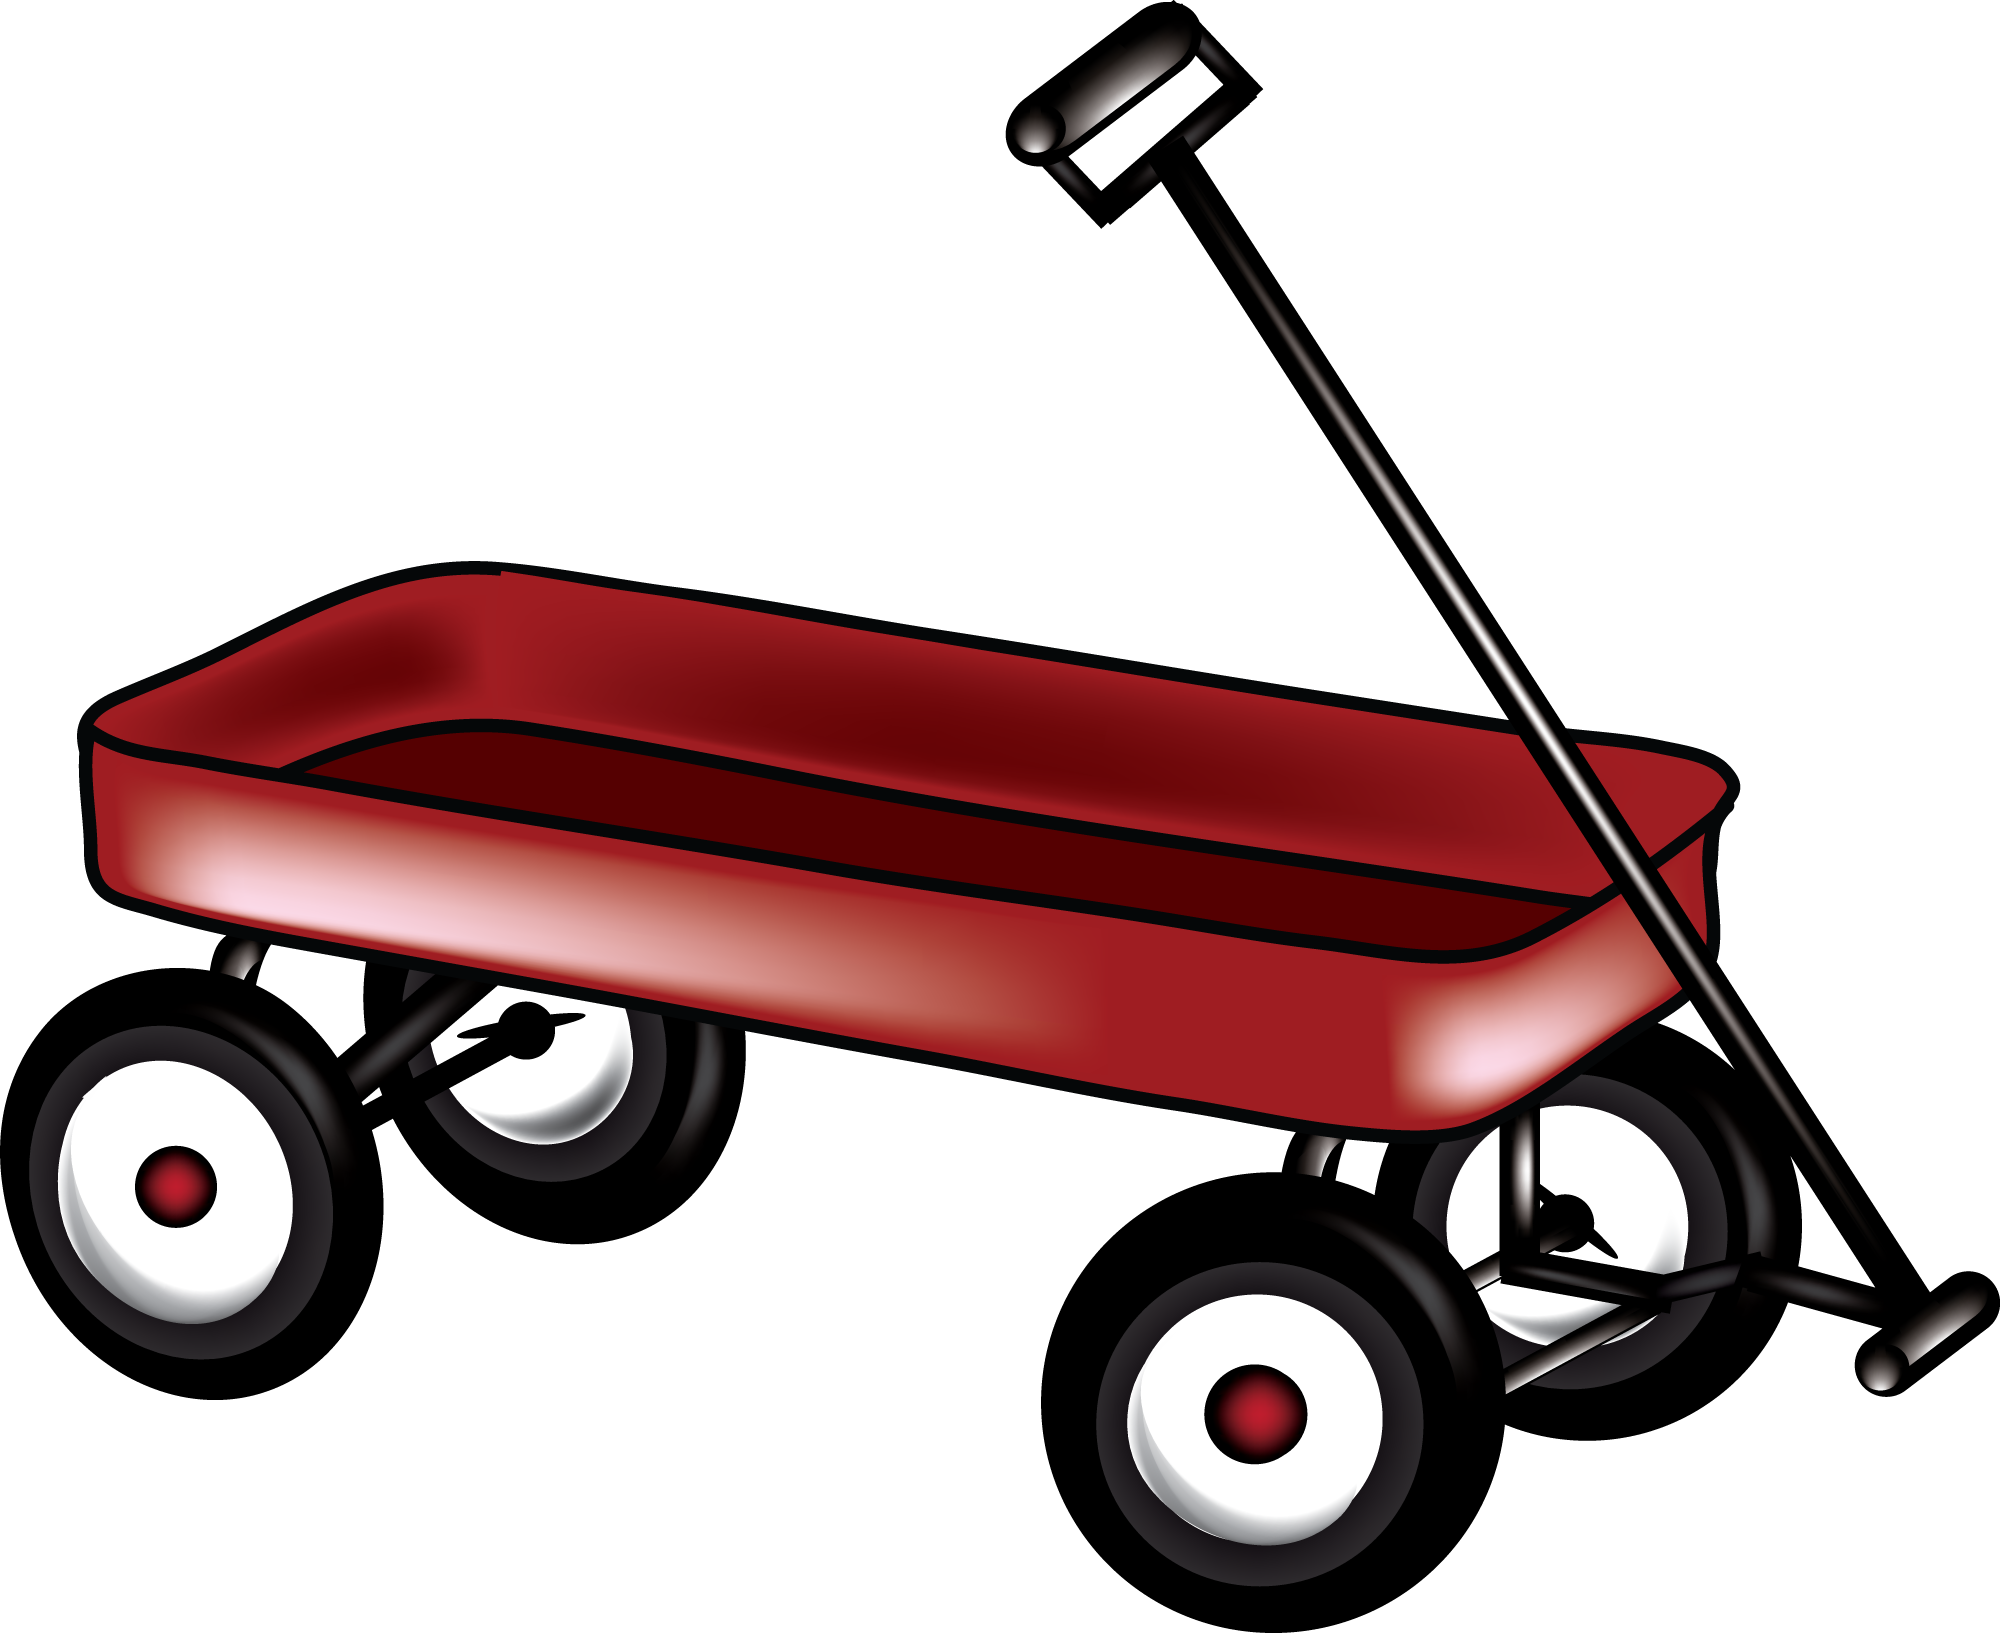 Clipart of wagon clipart library download Free Wagon Cliparts, Download Free Clip Art, Free Clip Art on ... clipart library download